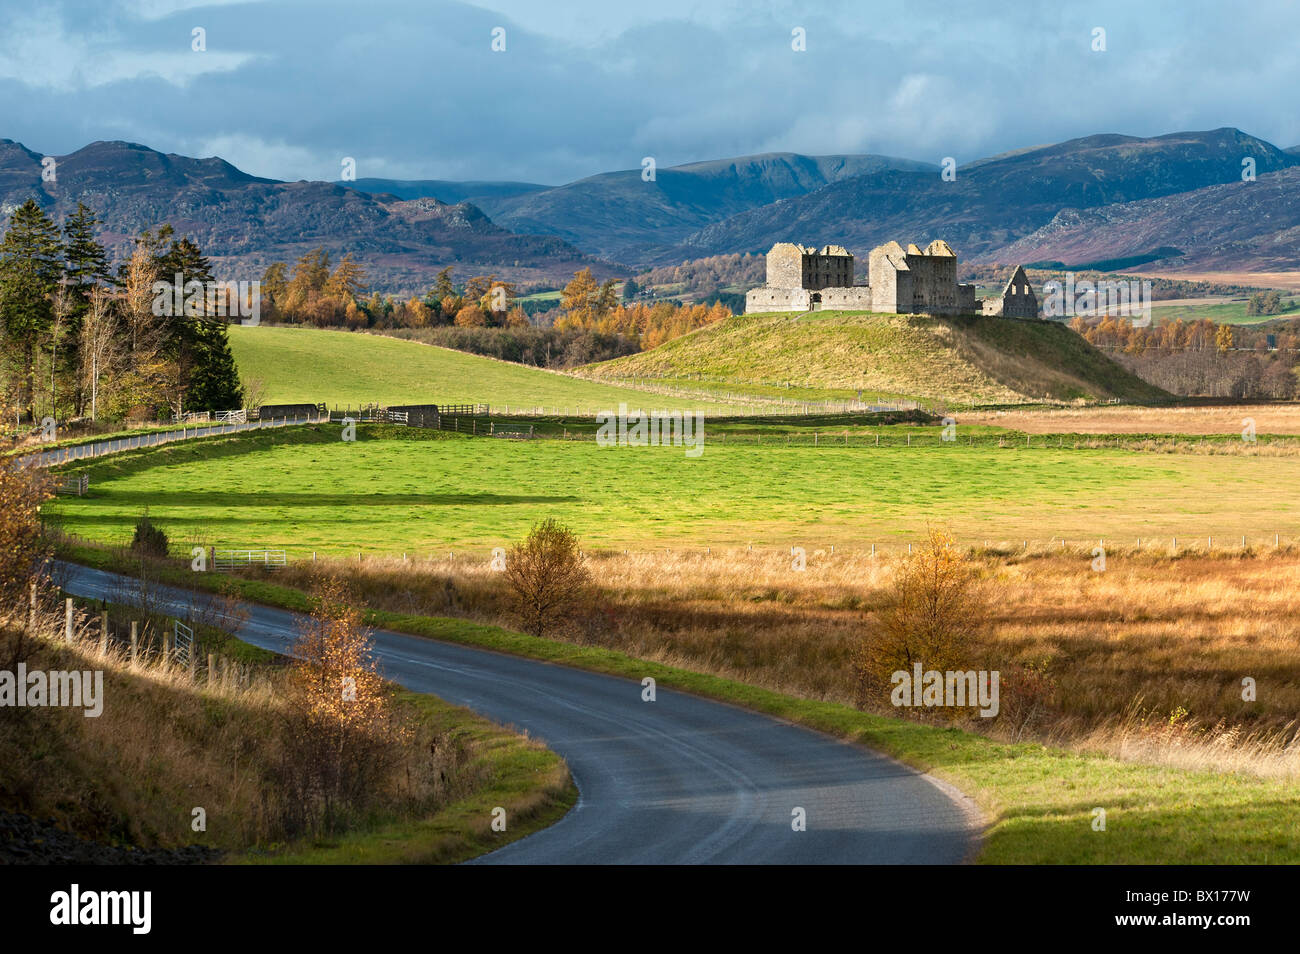 Ruthven Barracks from the B970 - Stock Image